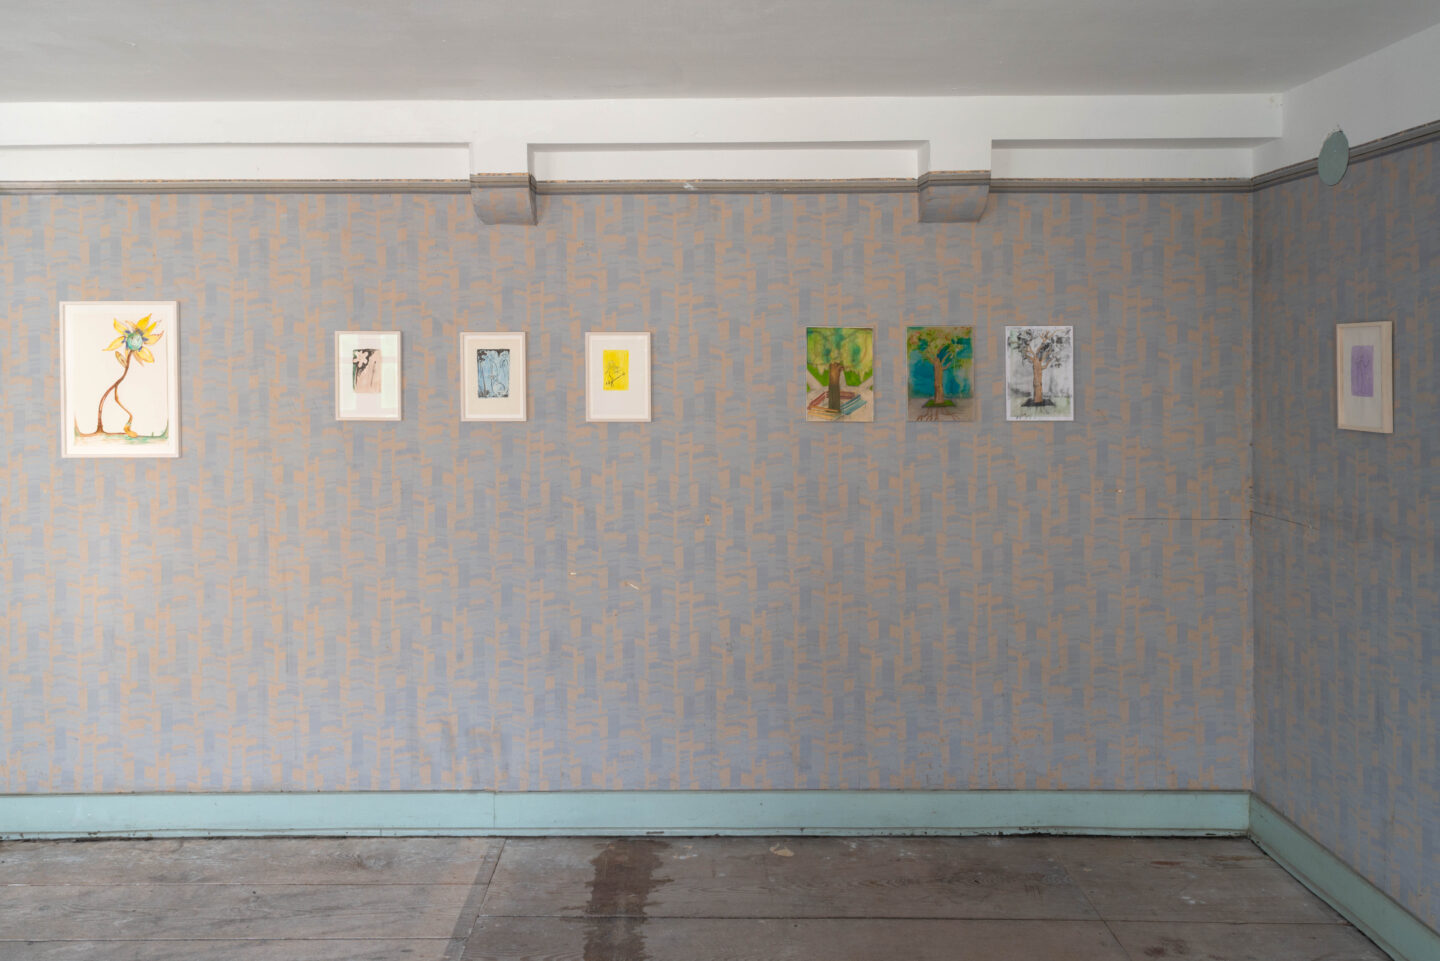 Exhibition View Groupshow «Watercolours, Chapter I» at Weiss Falk, Basel, 2020 / Photo: Flavio Karrer / Courtesy: the artists and Weiss Falk